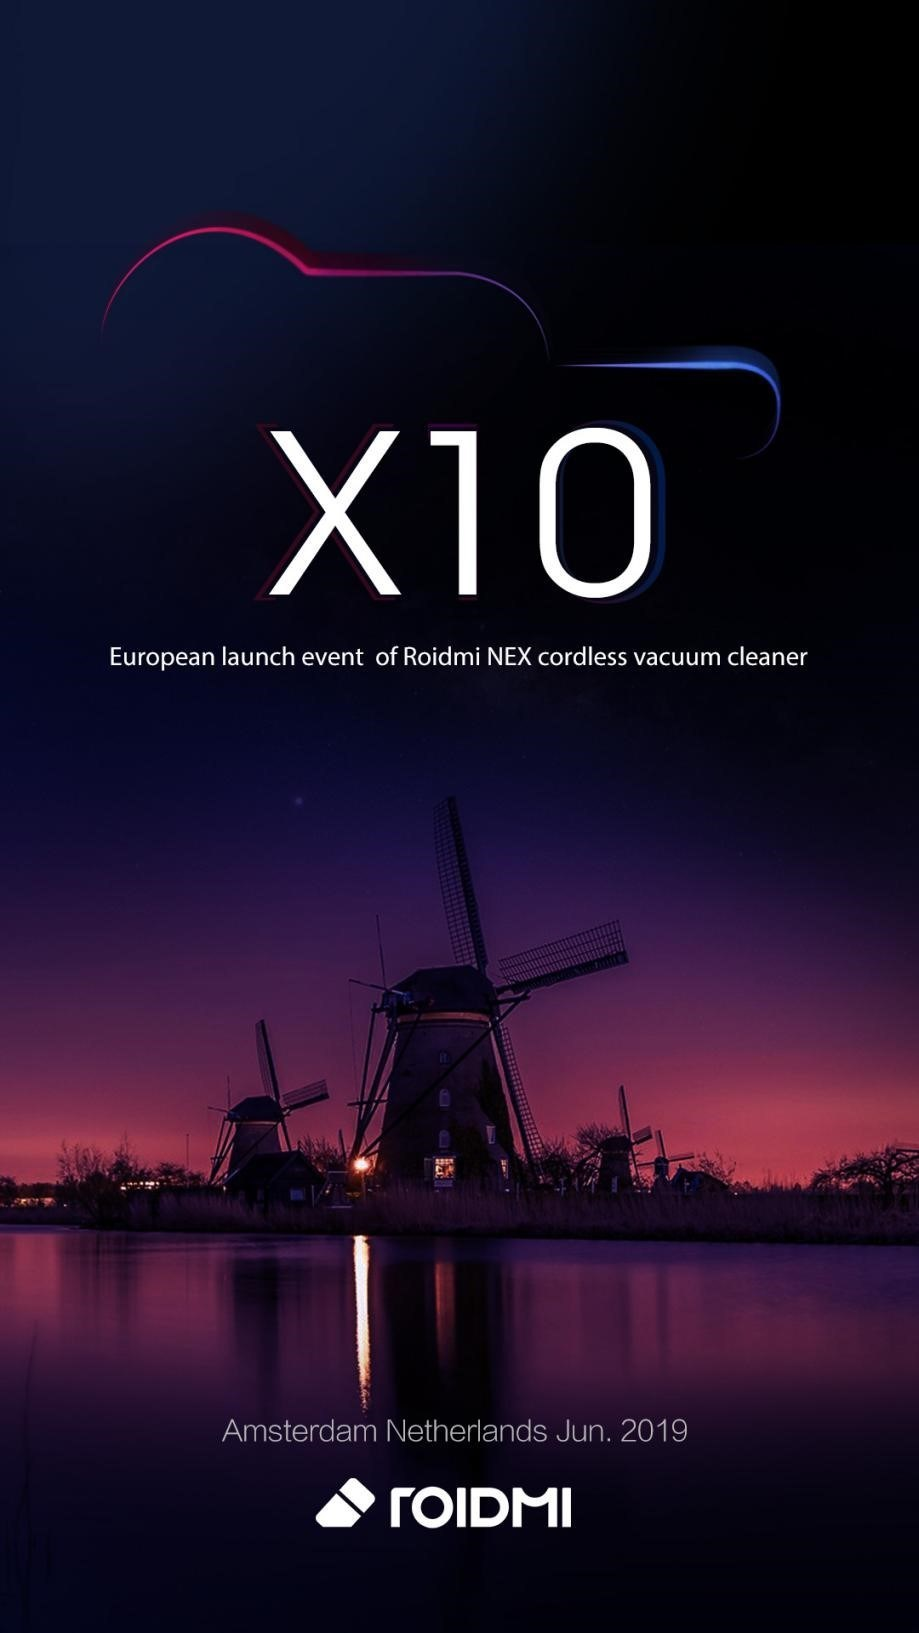 XIAOMI ROIDMI unveils X10 - the new-generation of mop & vacuum cleaning